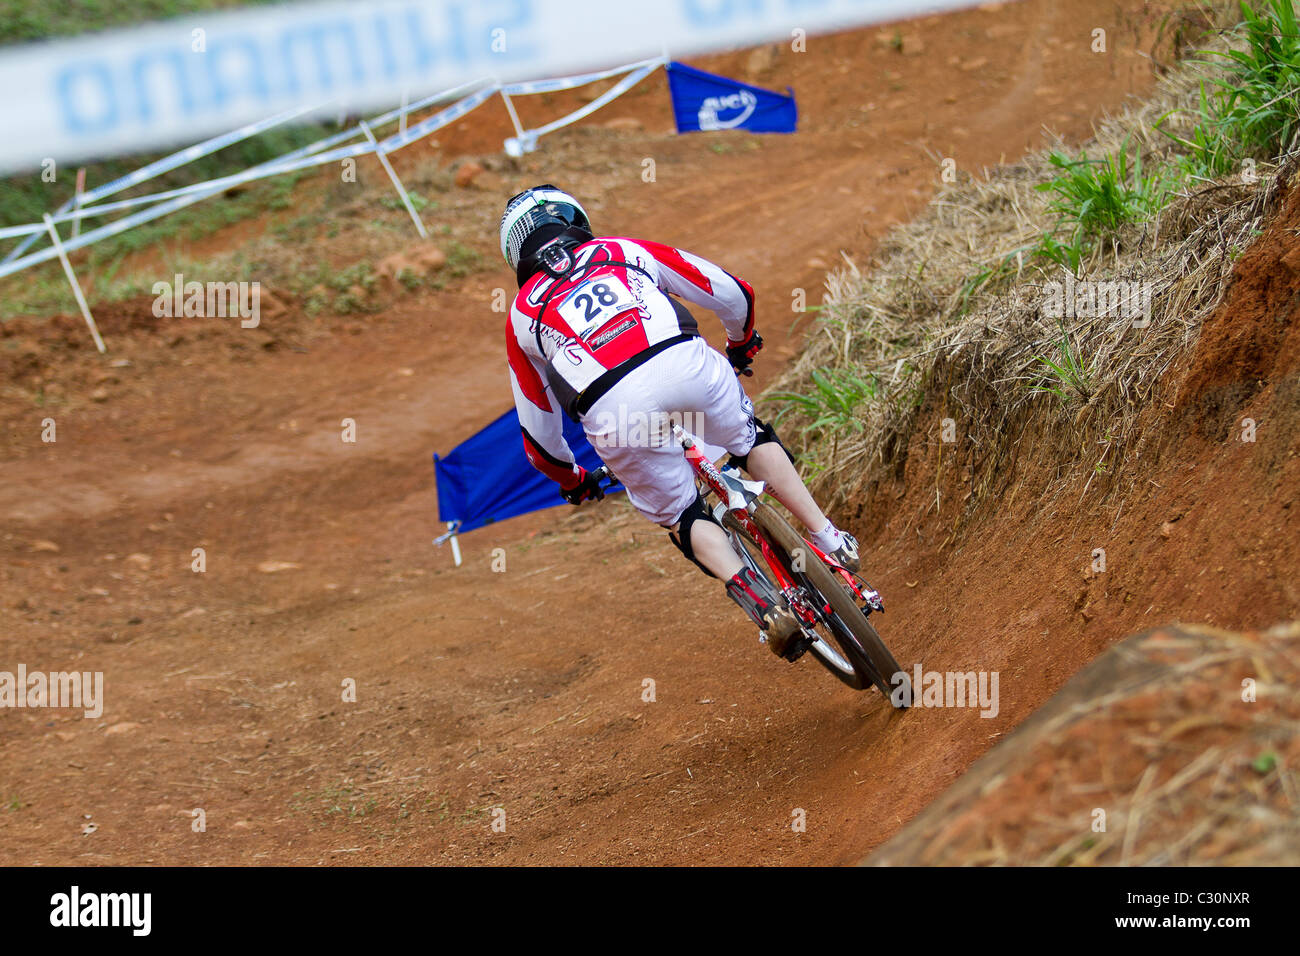 Four Cross rider on practice run through berm at UCI MTB World Cup - Stock Image